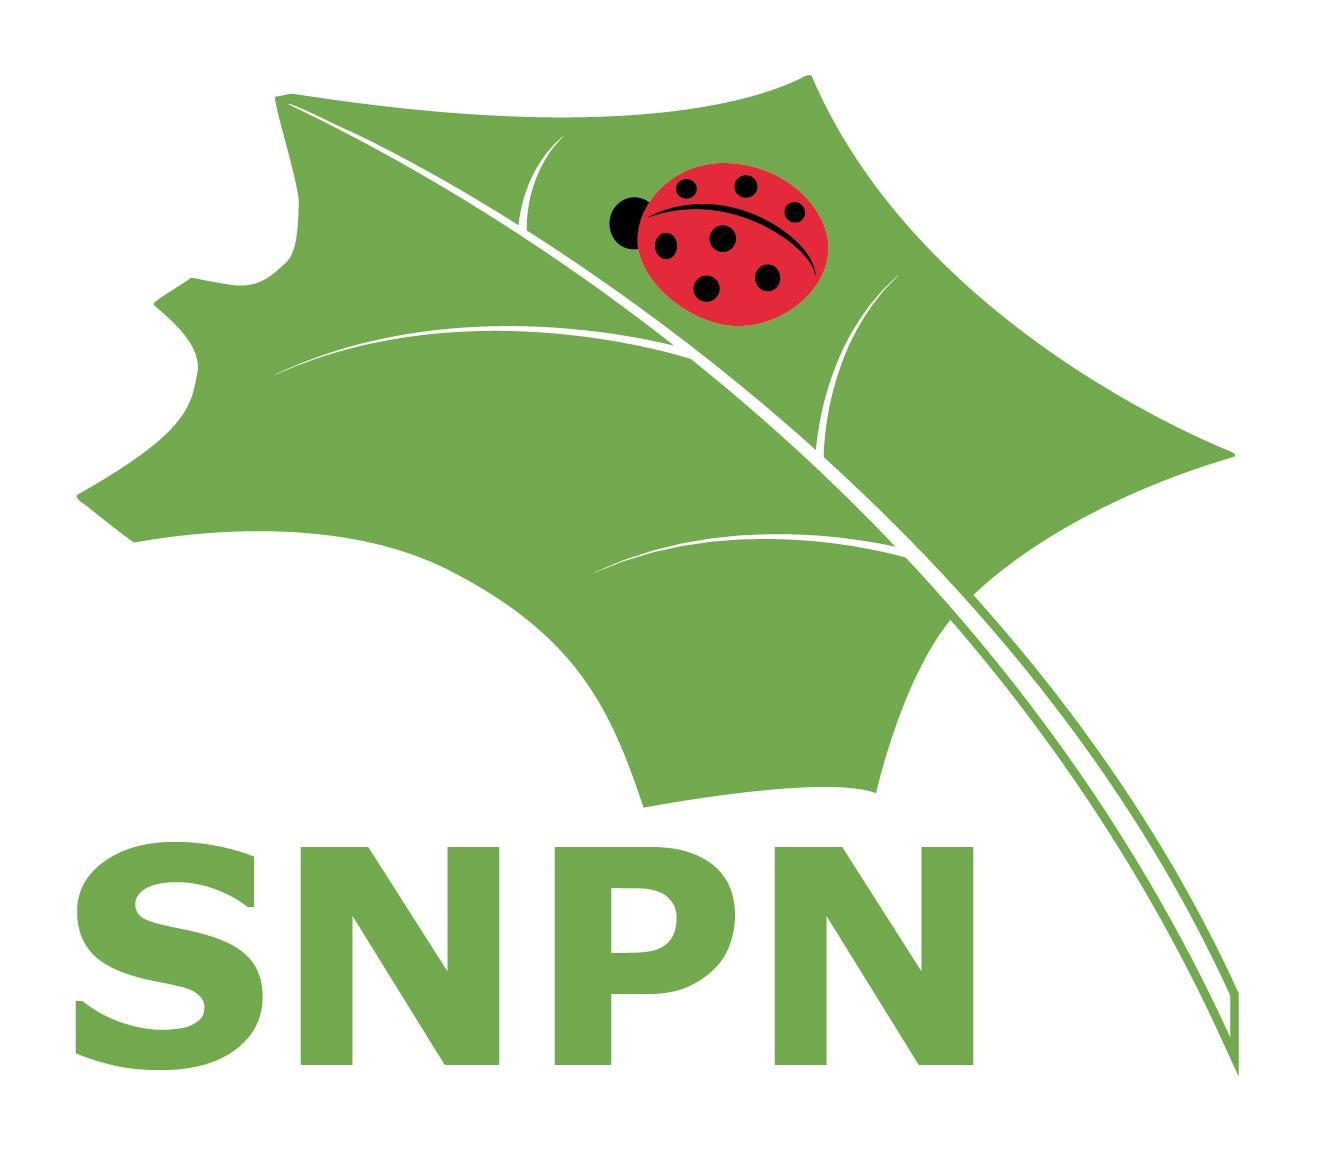 Association - La Société nationale de protection de la nature